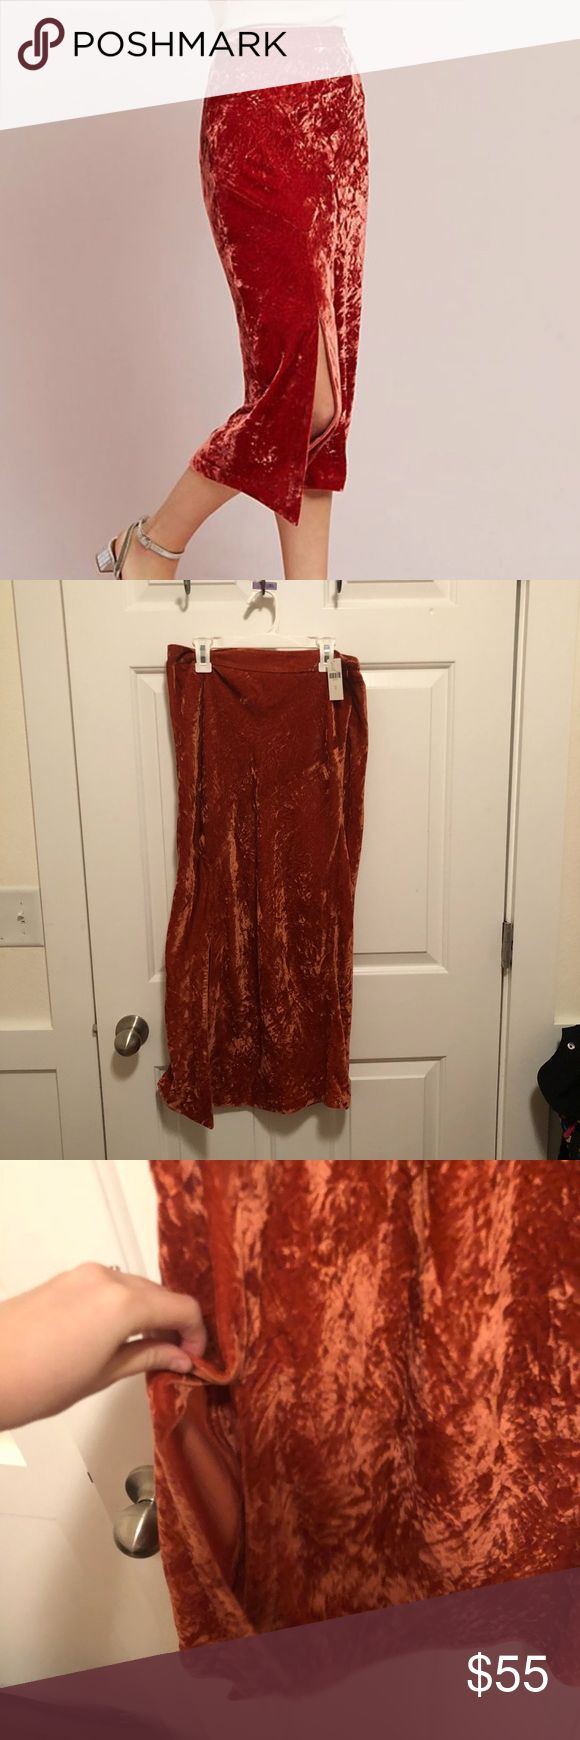 NWT Anthropologie velvet midi skirt NWT Anthropologie velvet midi skirt - by Maeve - burnt orange - side slit - size 8, fits more like a 6 - beautiful velvet material, very fitted in the right areas and flattering Anthropologie Skirts Midi